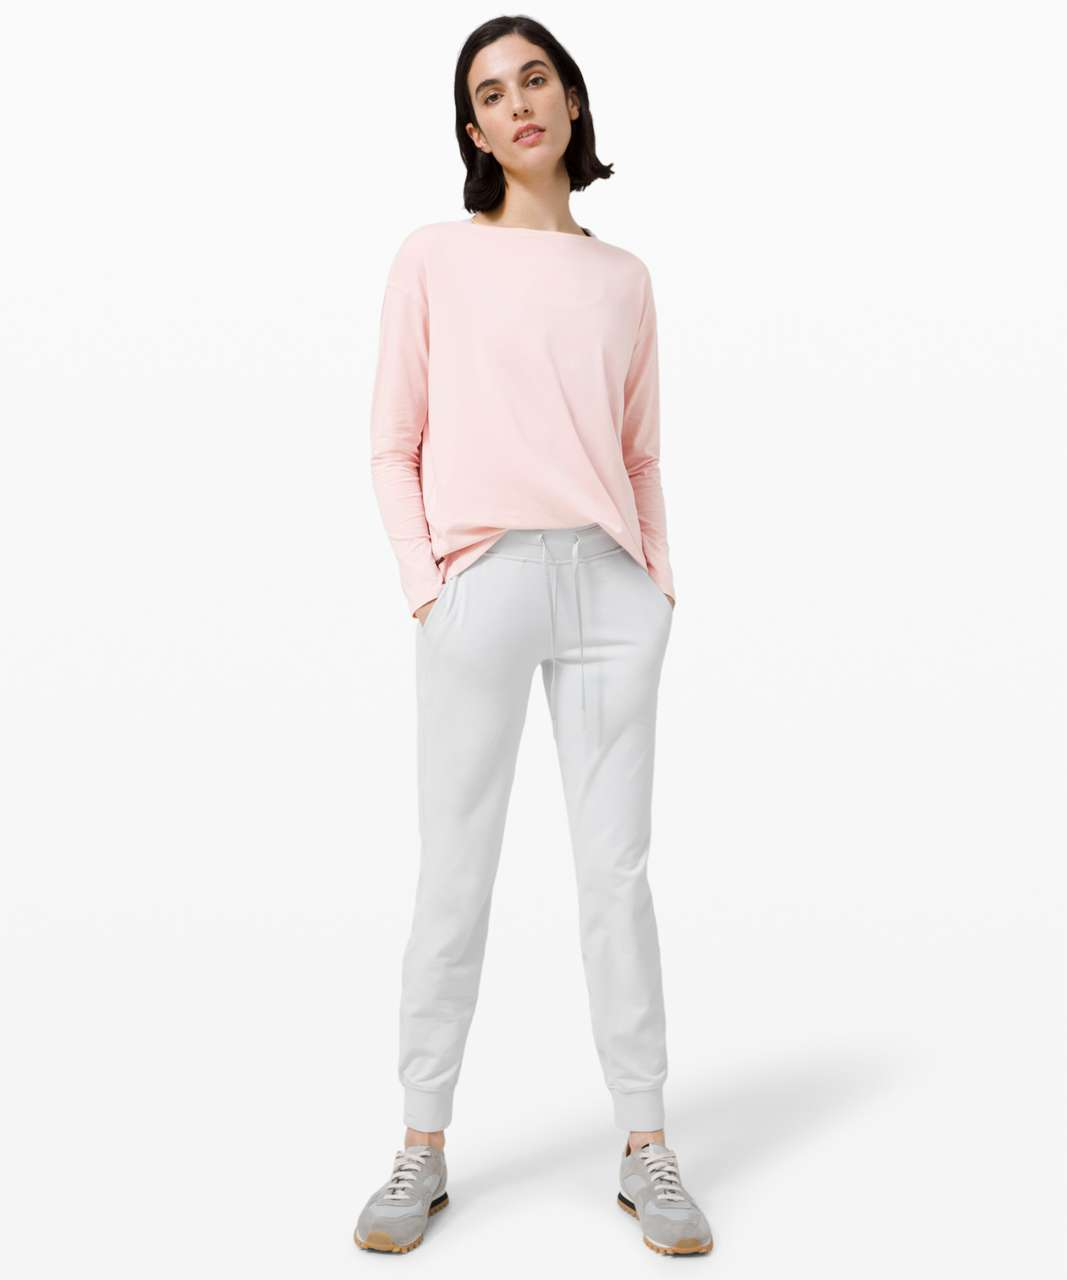 Lululemon Back In Action Long Sleeve - Misty Pink